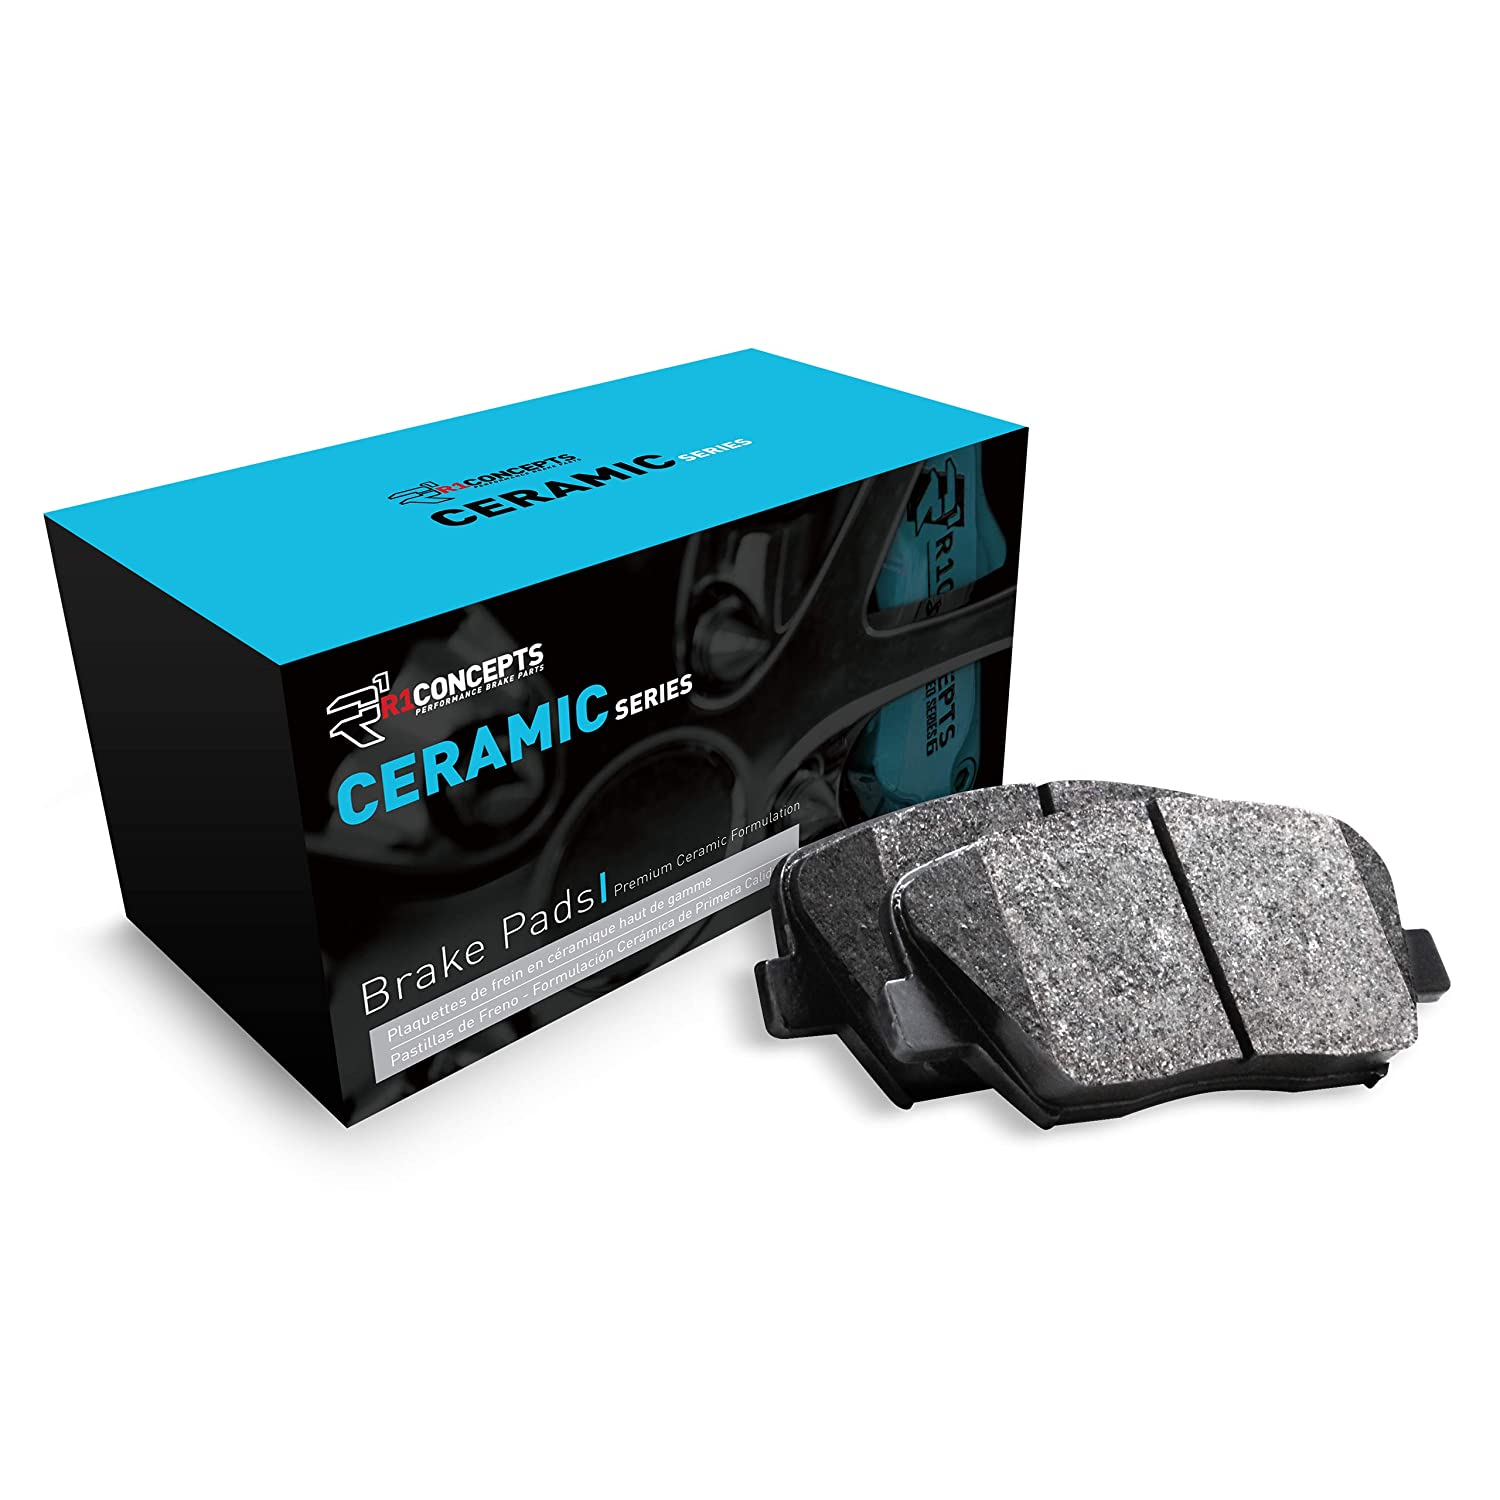 Rear R1 Concepts Ceramic Series Brake Pad With Rubber Steel Rubber Shims